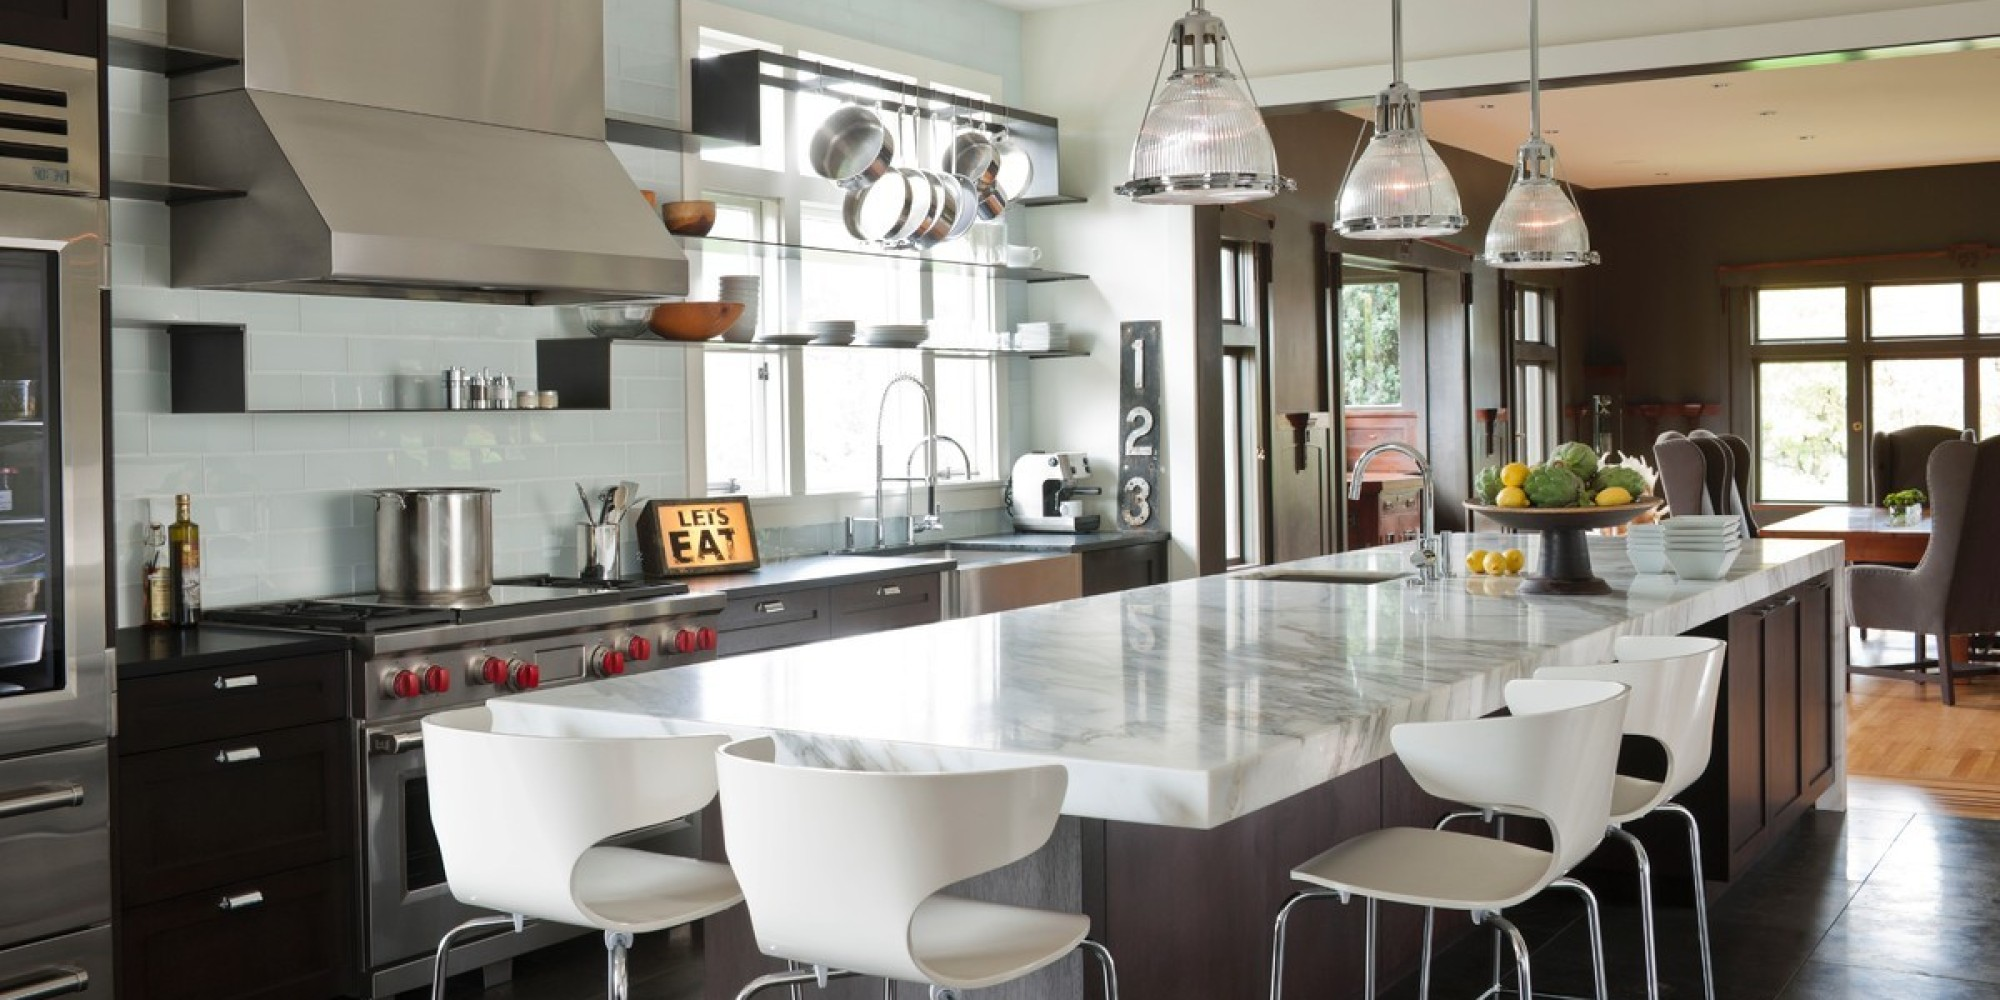 Gourmet Kitchen Design Awesome These 14 Incredible Kitchens Are What Dreams Are Made Of Photos . Design Inspiration